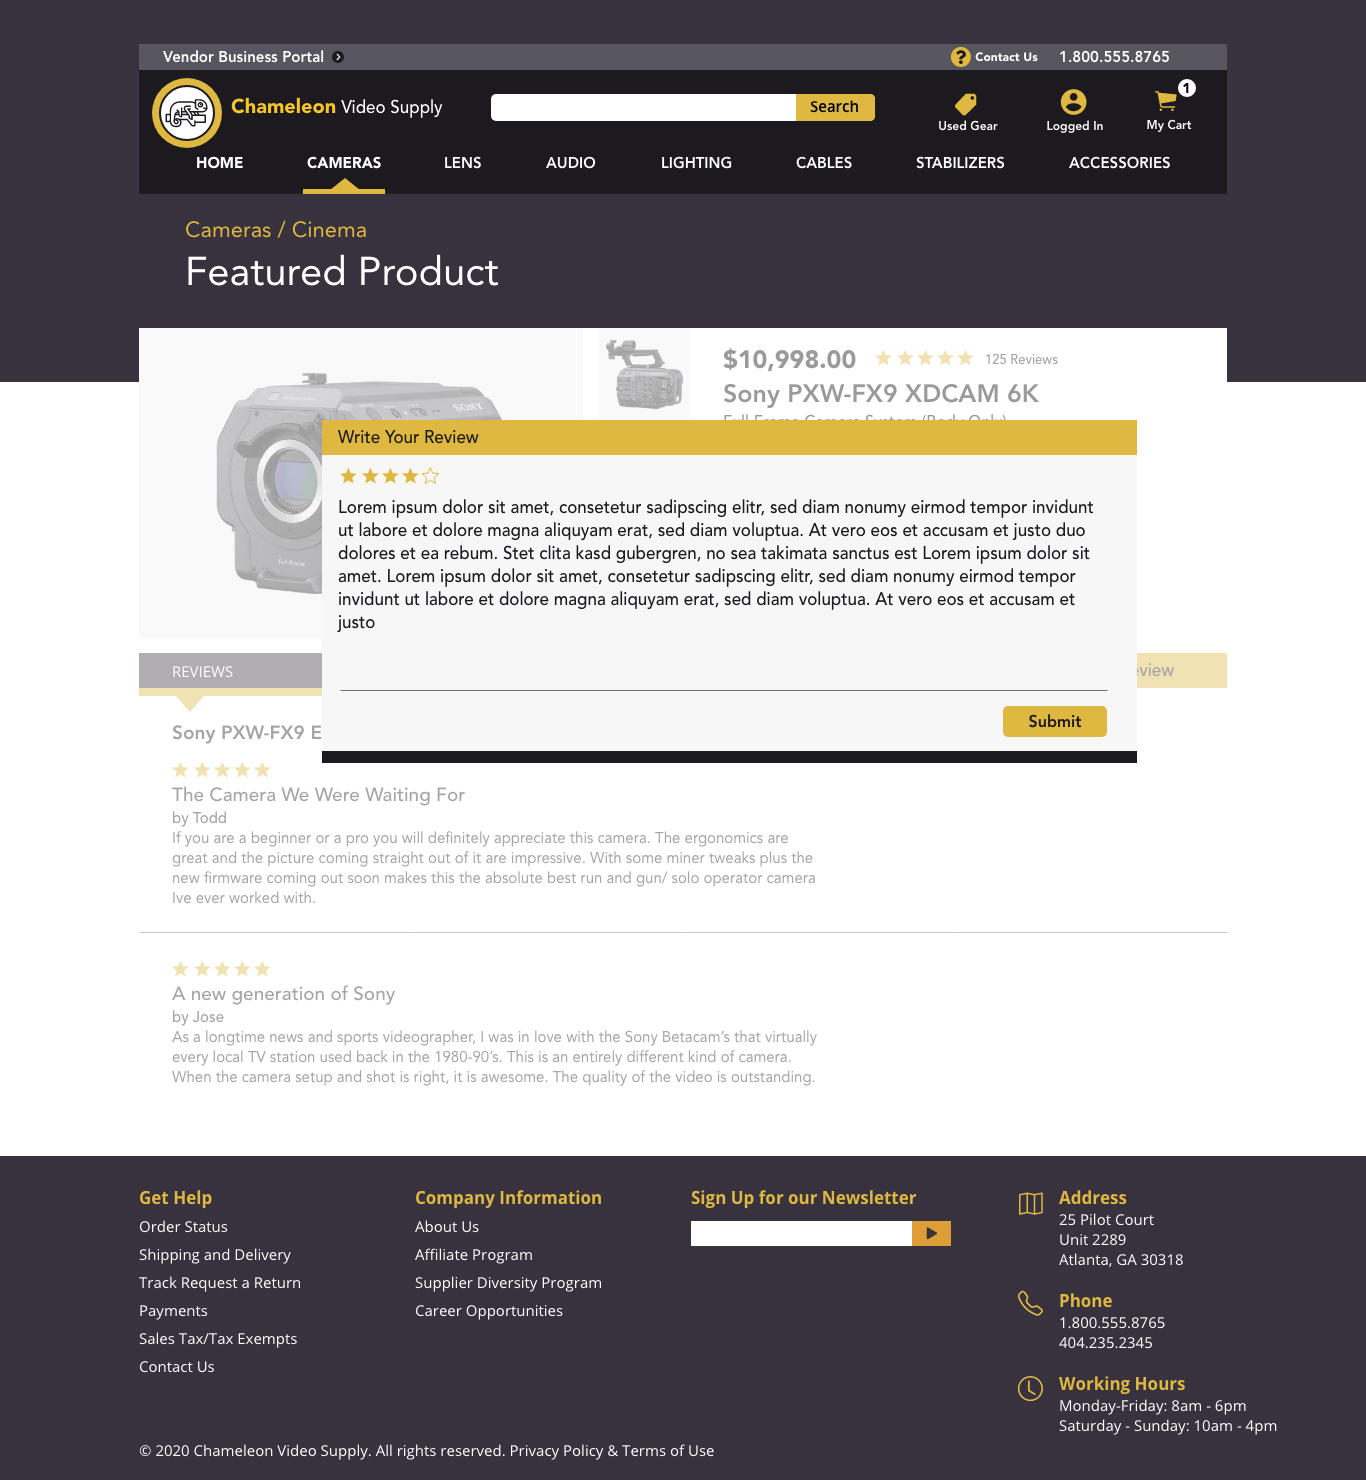 Review screen page from the feature product section